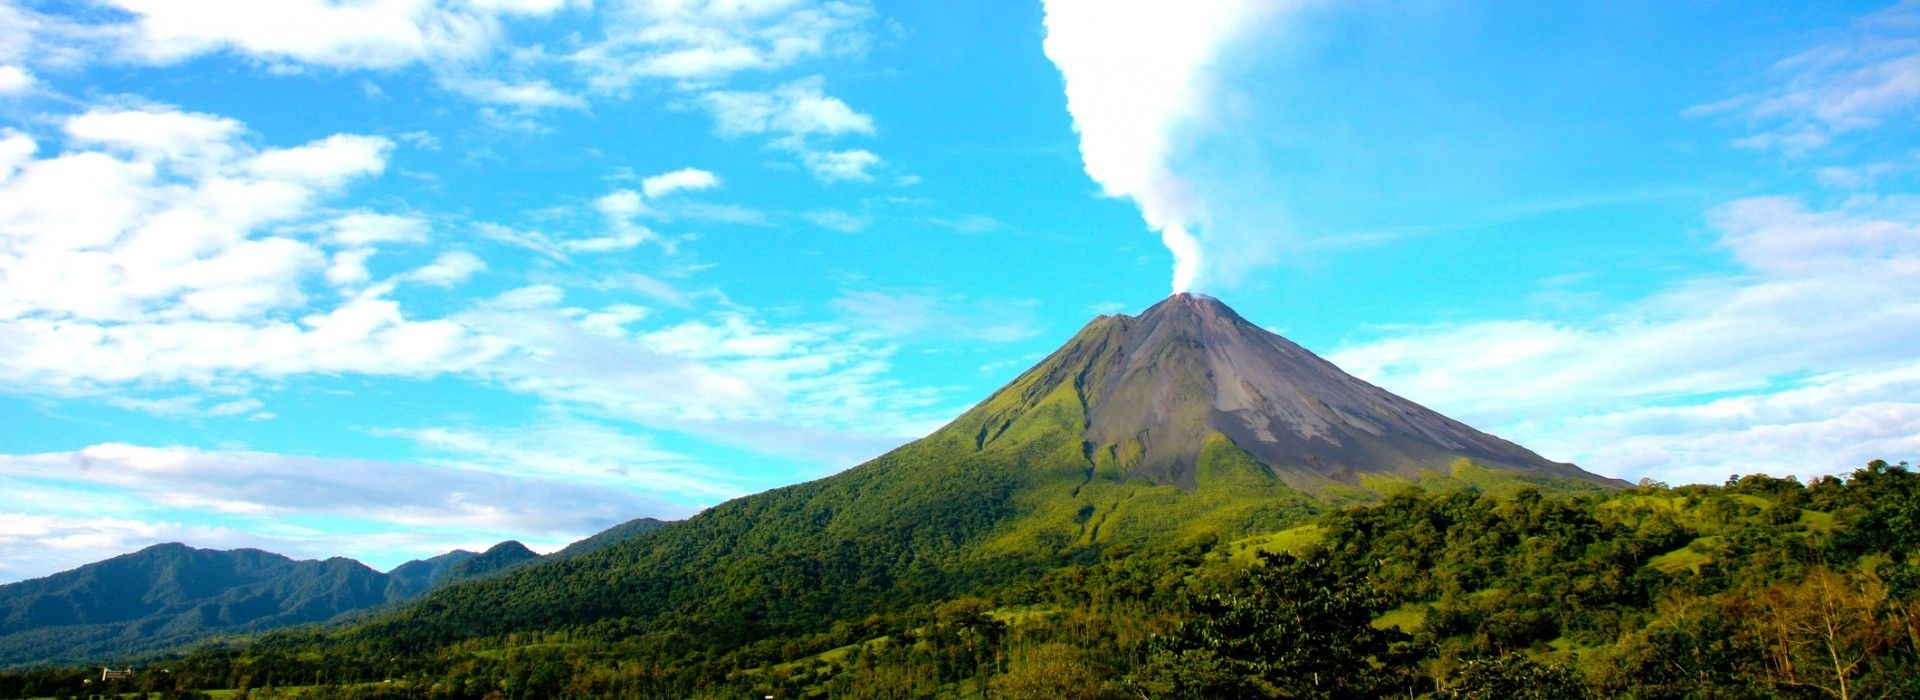 Natural landmarks sightseeing Tours in Costa Rica